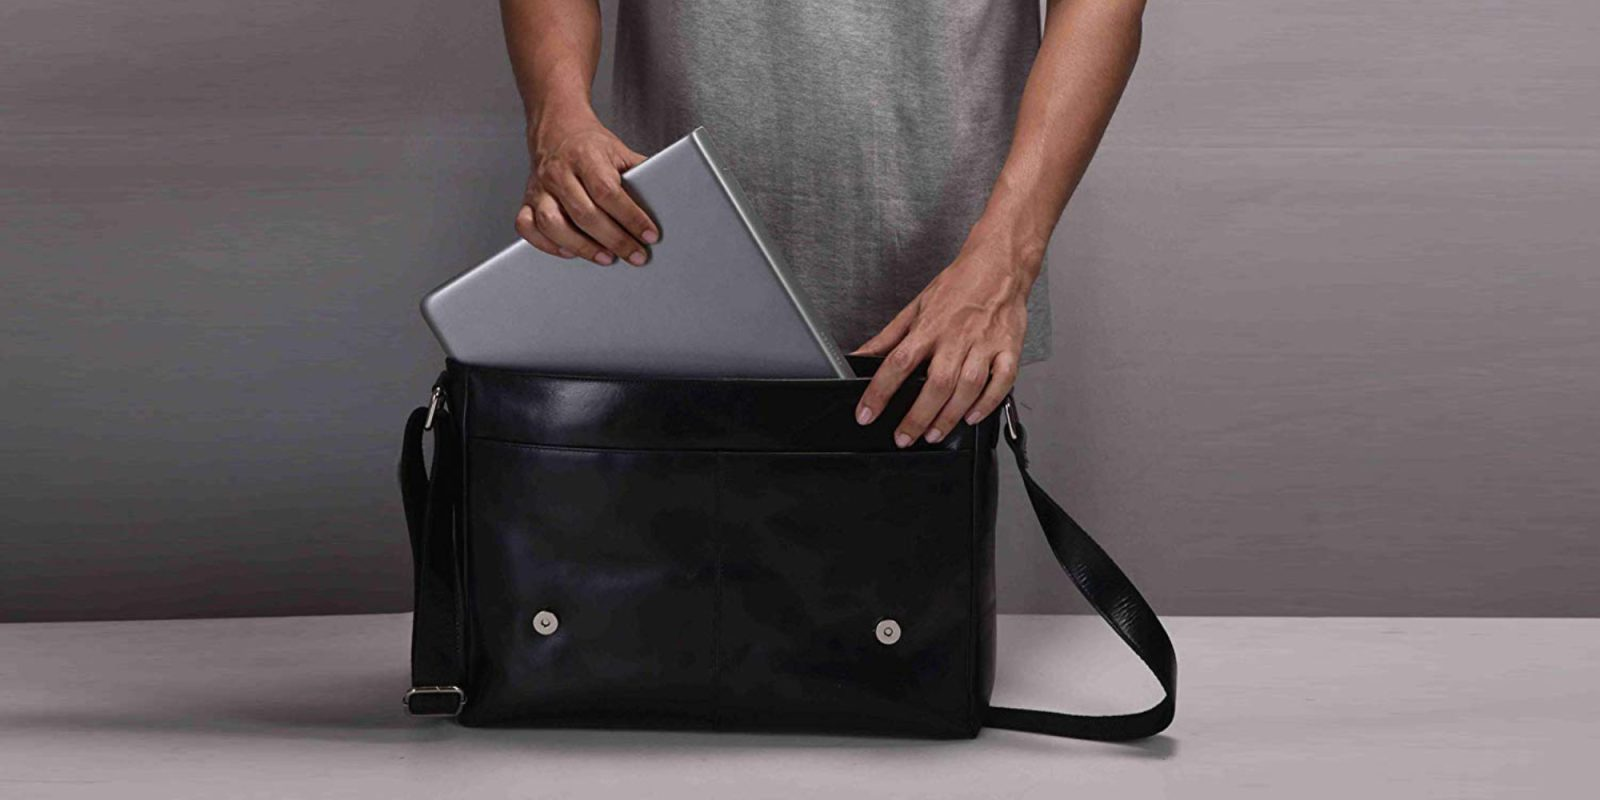 This MacBook-ready leather messenger bag is just $23 (Reg. $50+), more